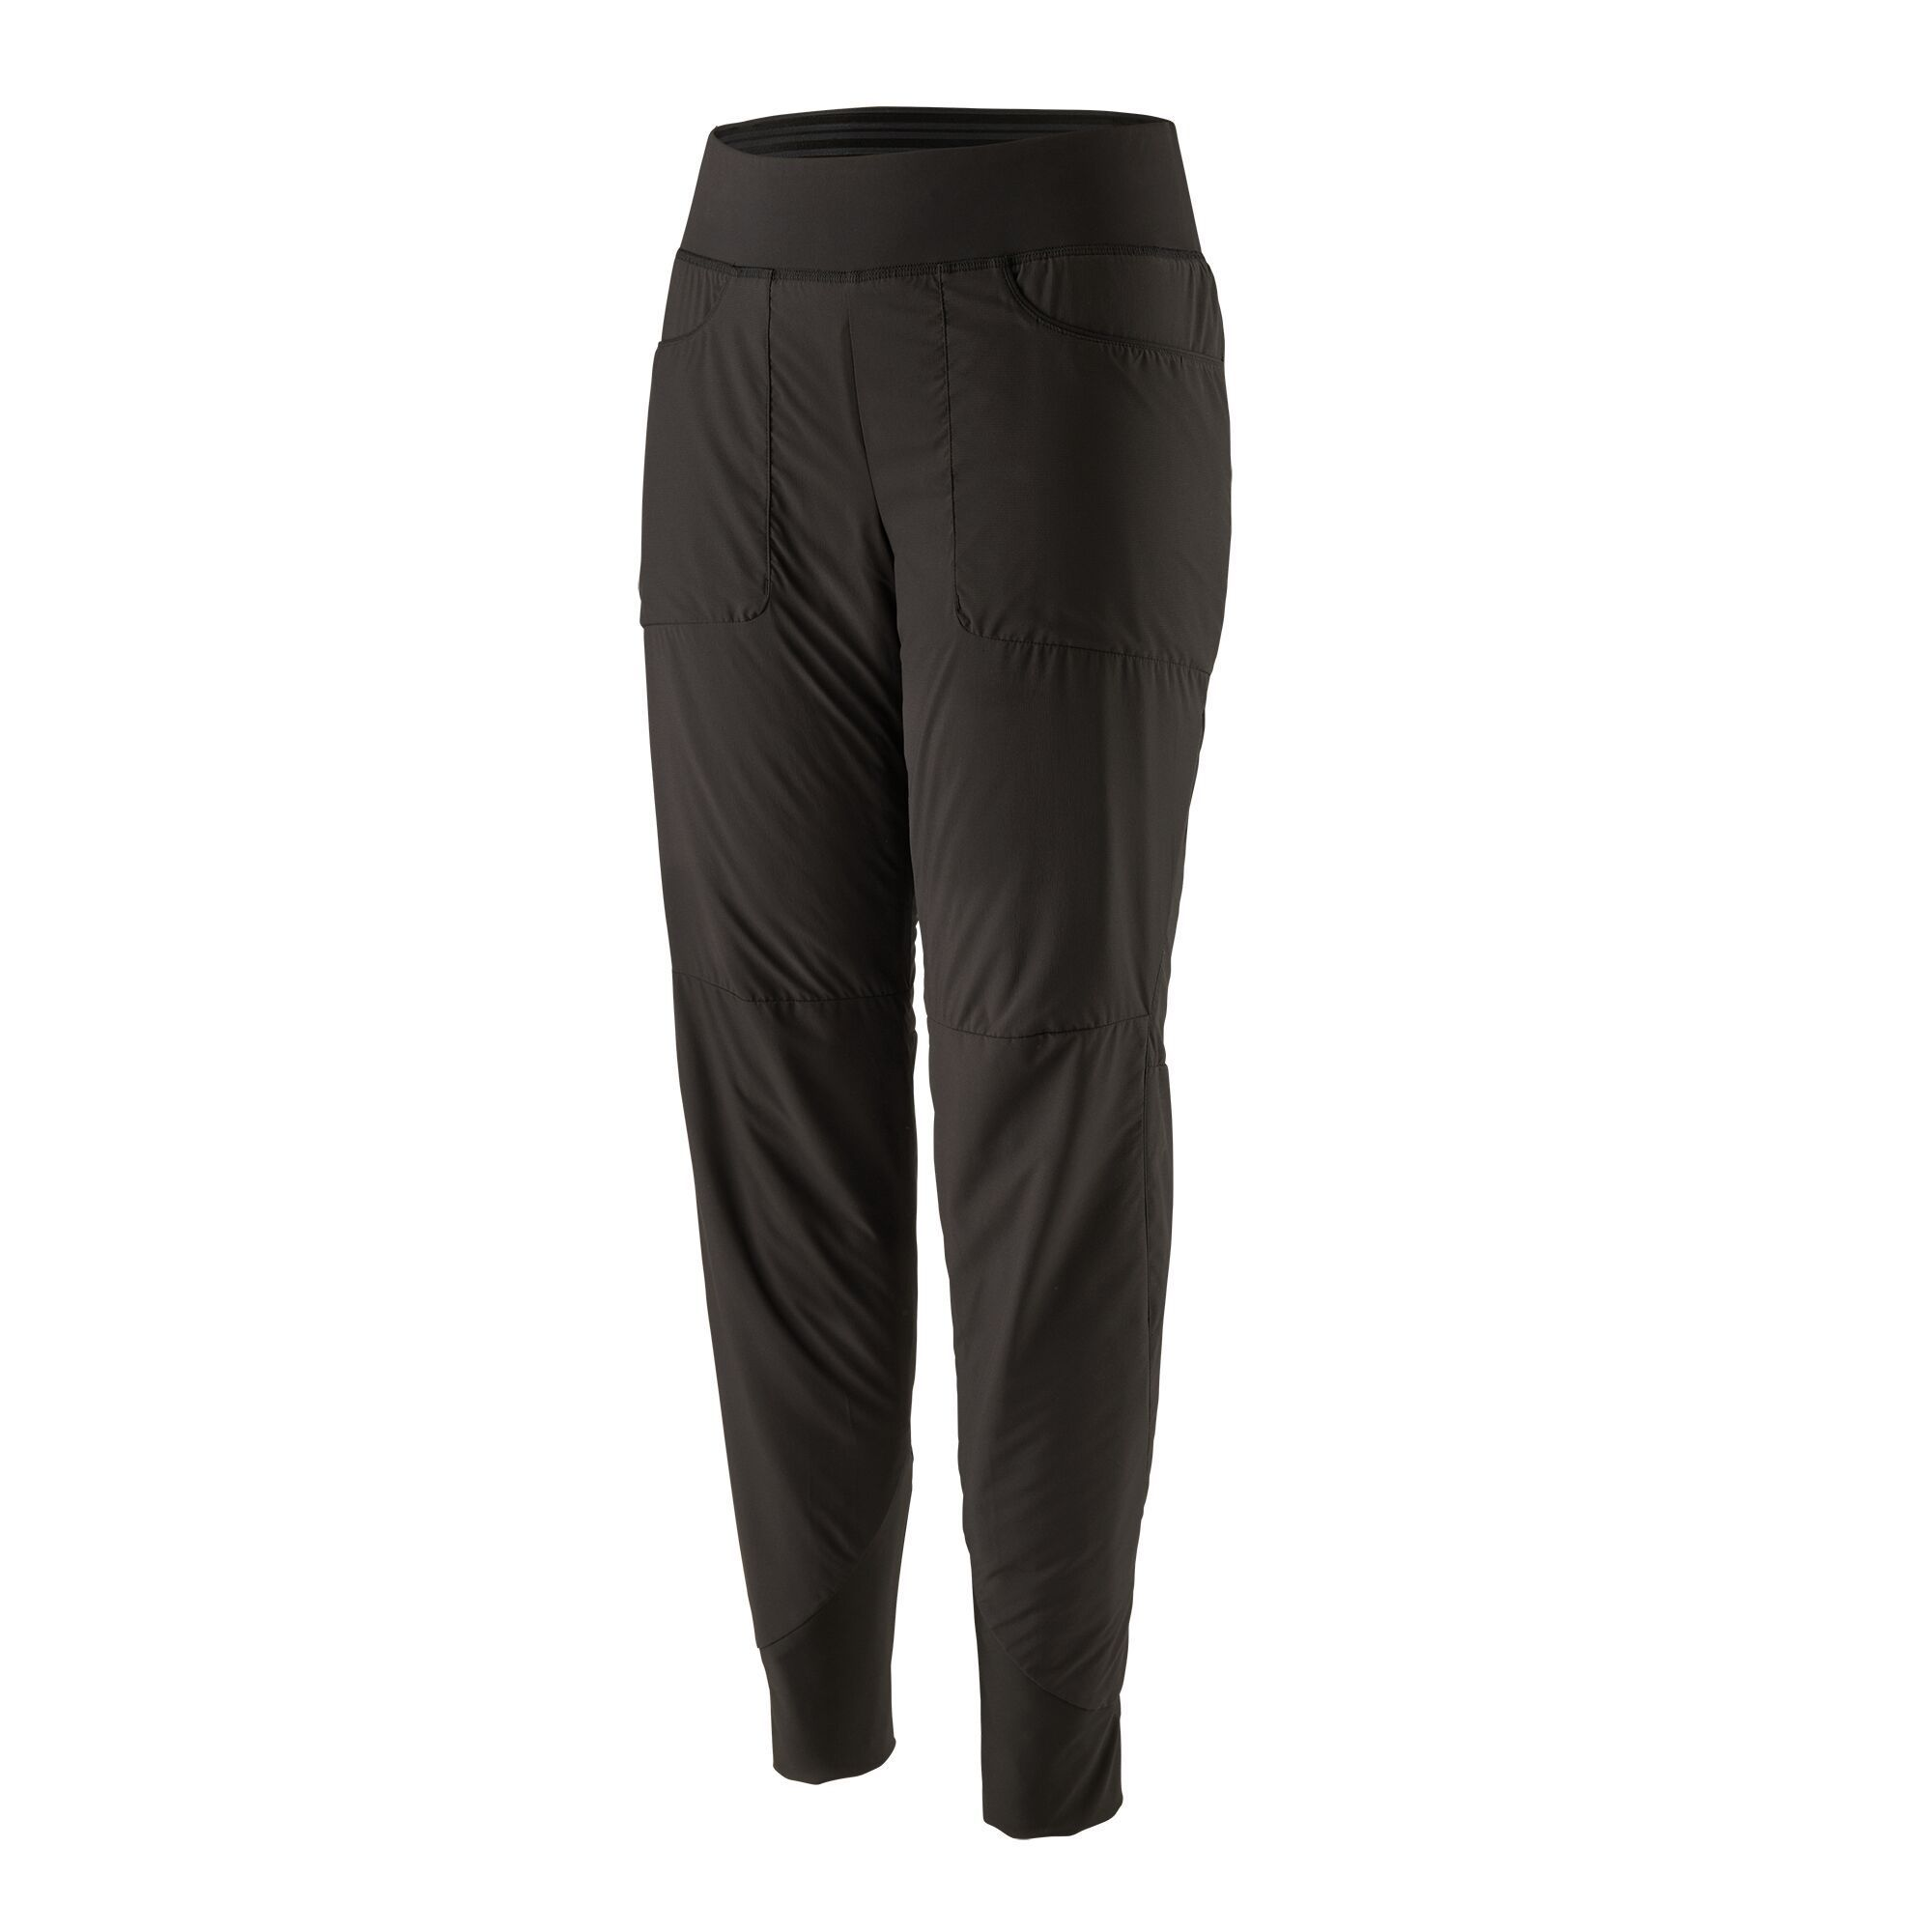 Patagonia - W's Nano-Air® Pants - Recycled Polyester - Weekendbee - sustainable sportswear